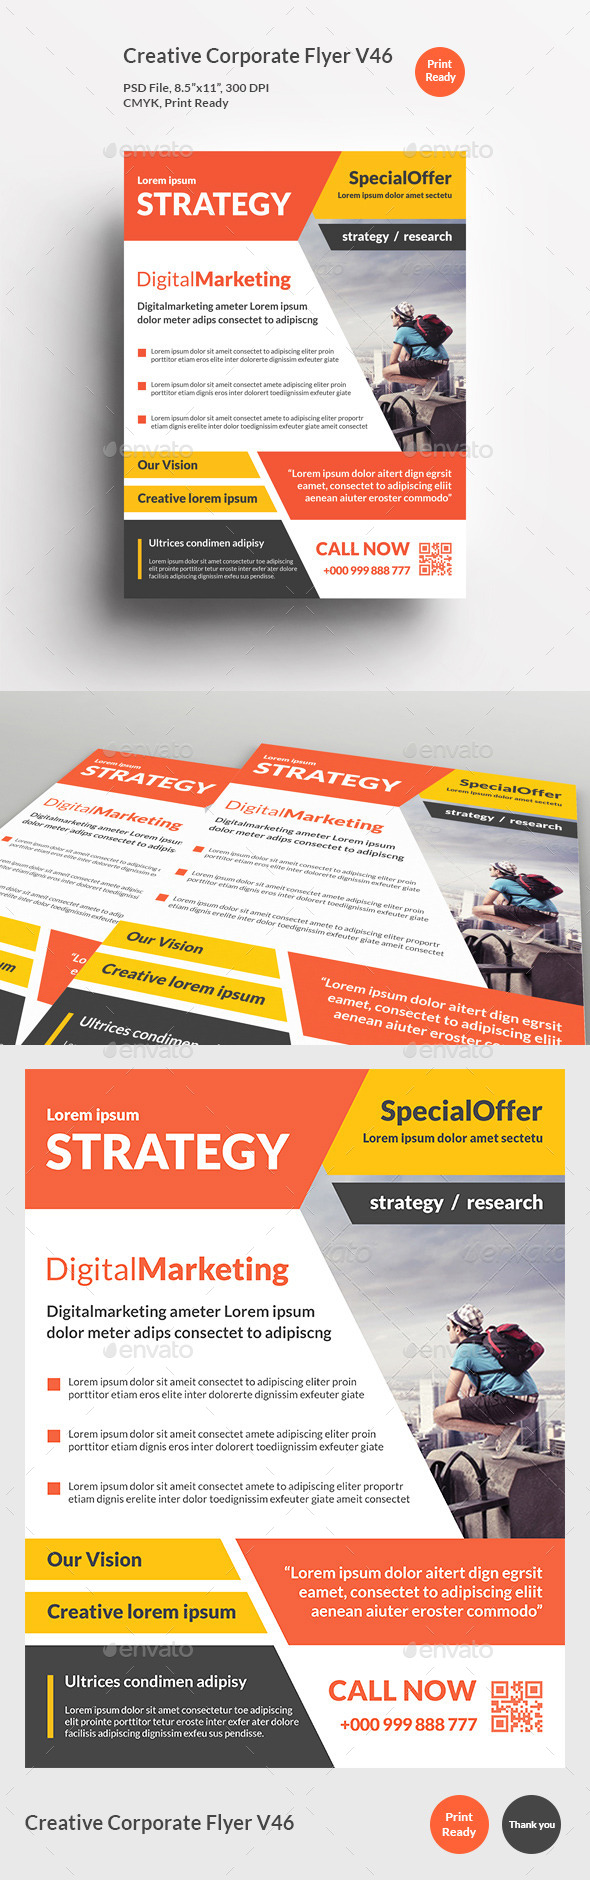 Creative Corporate Flyer V46